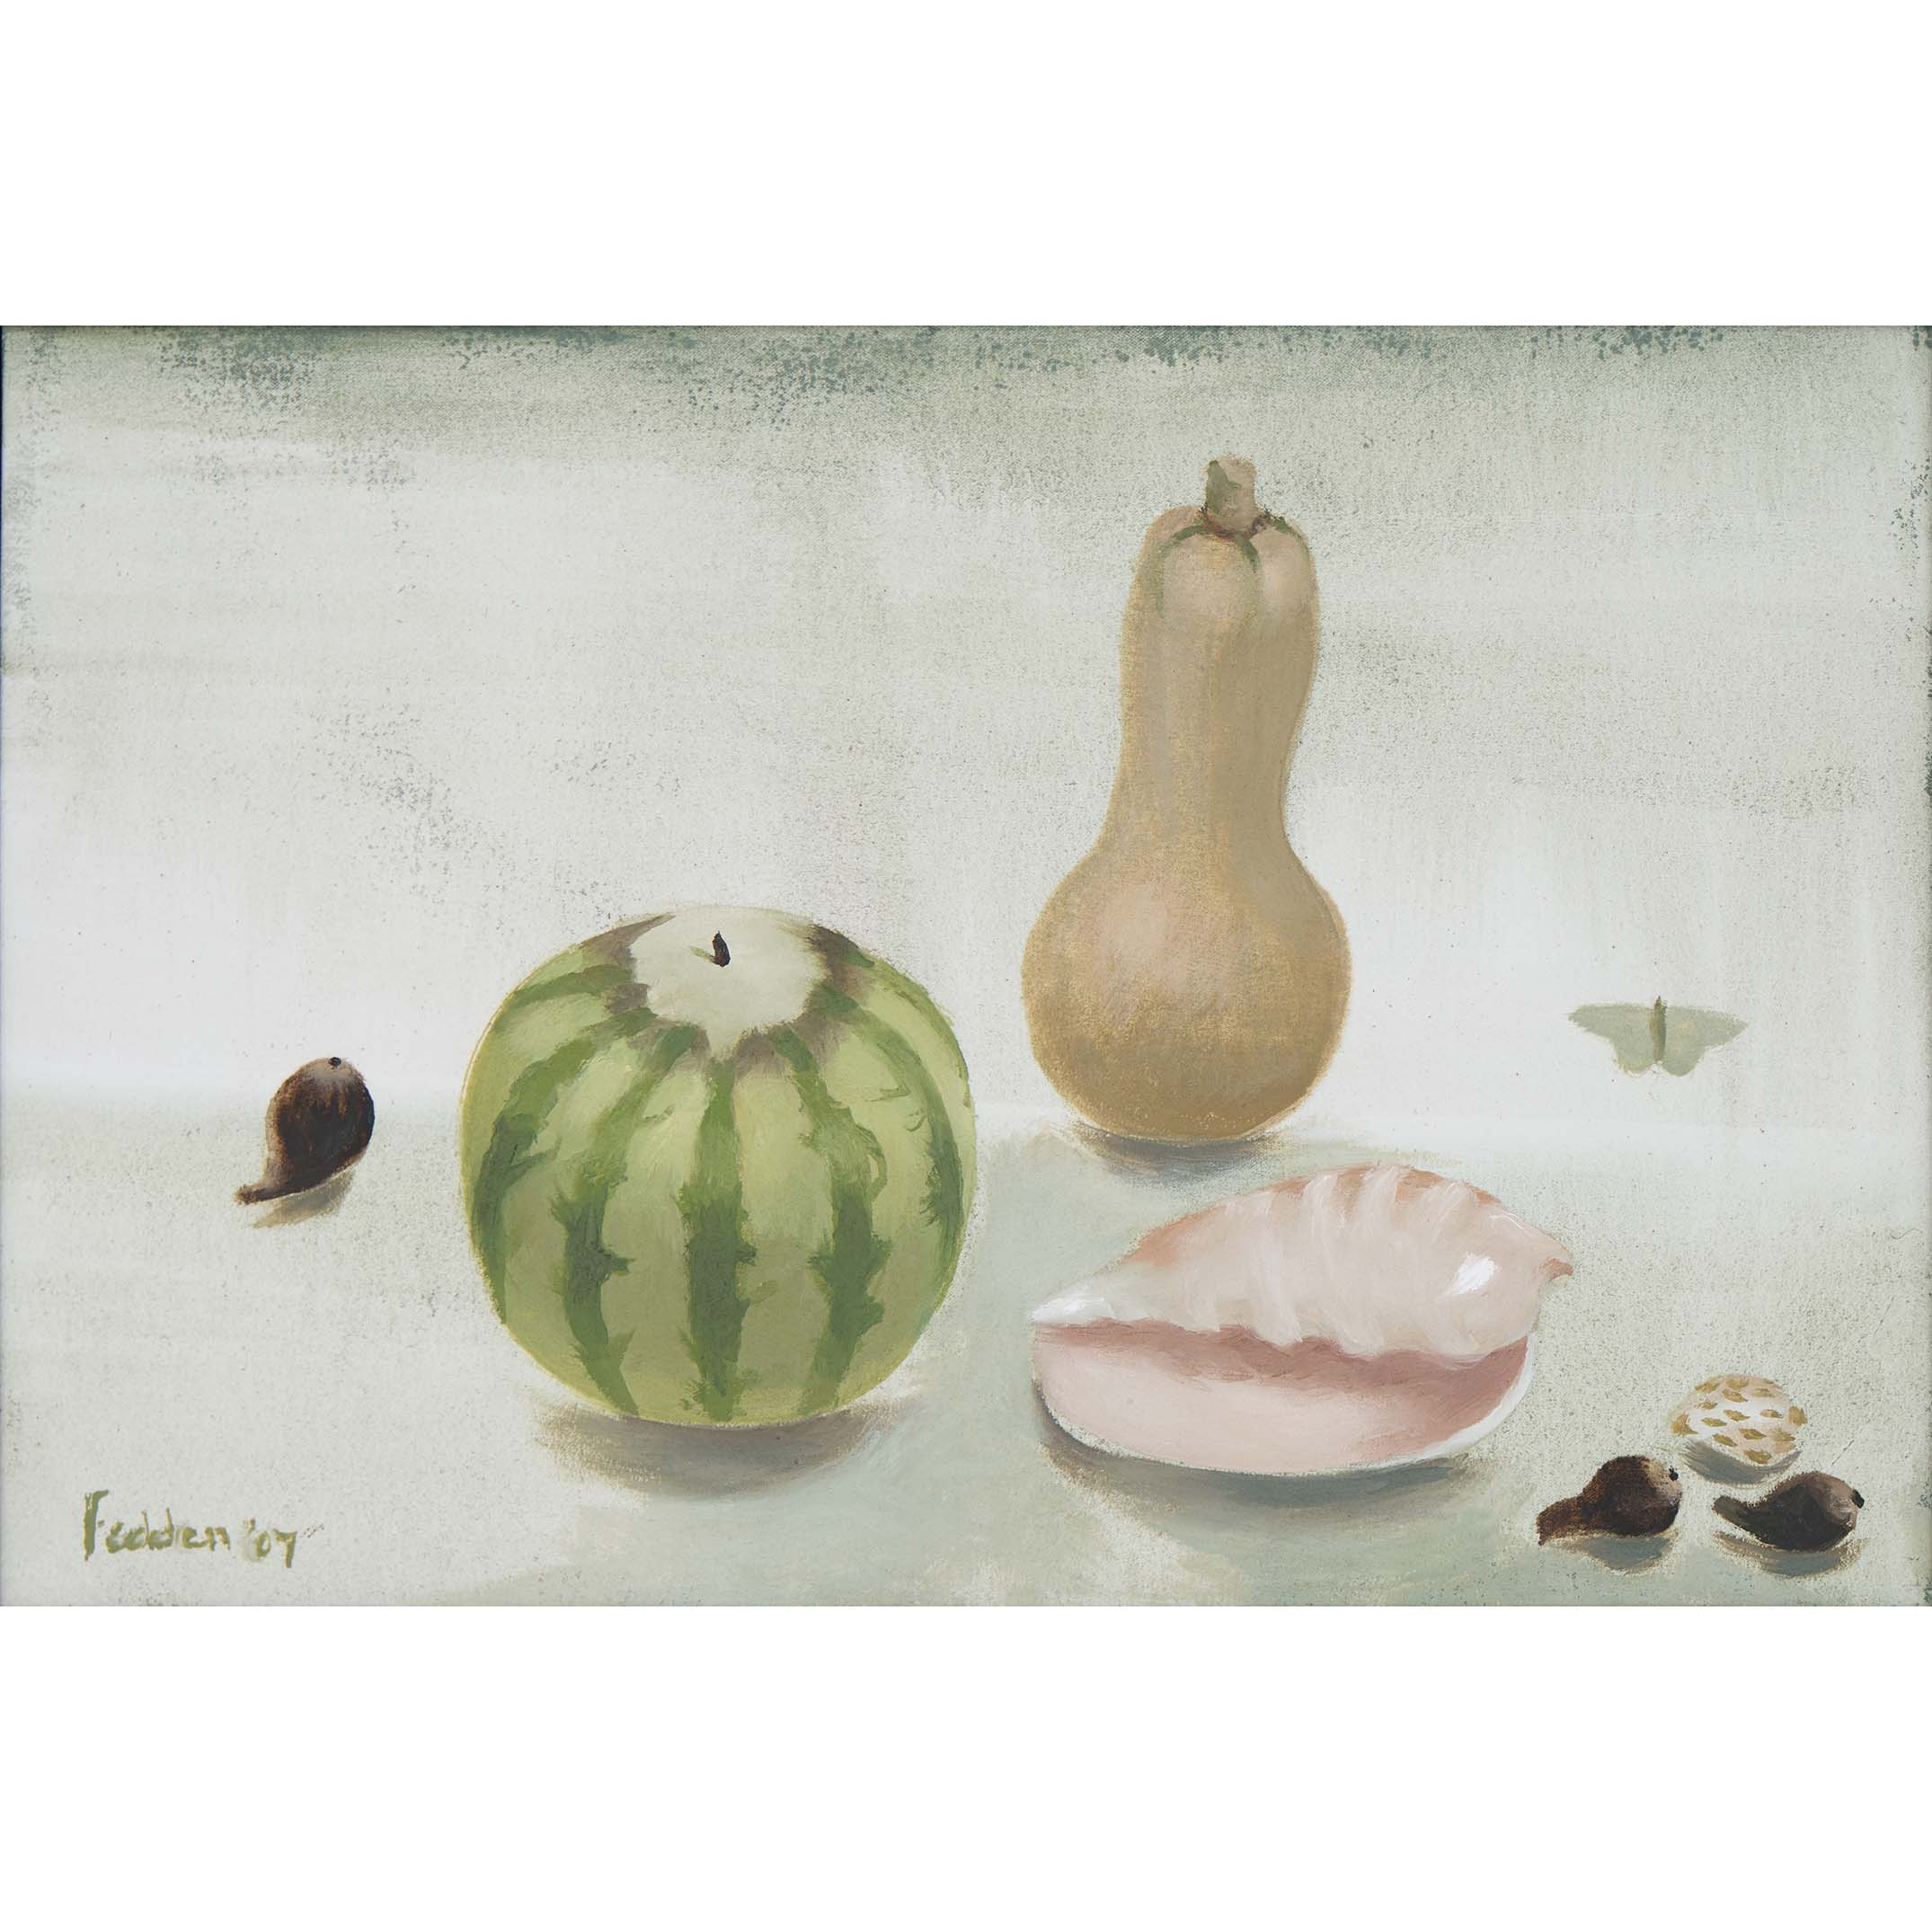 MARY FEDDEN. THE PINK SHELL. 2007